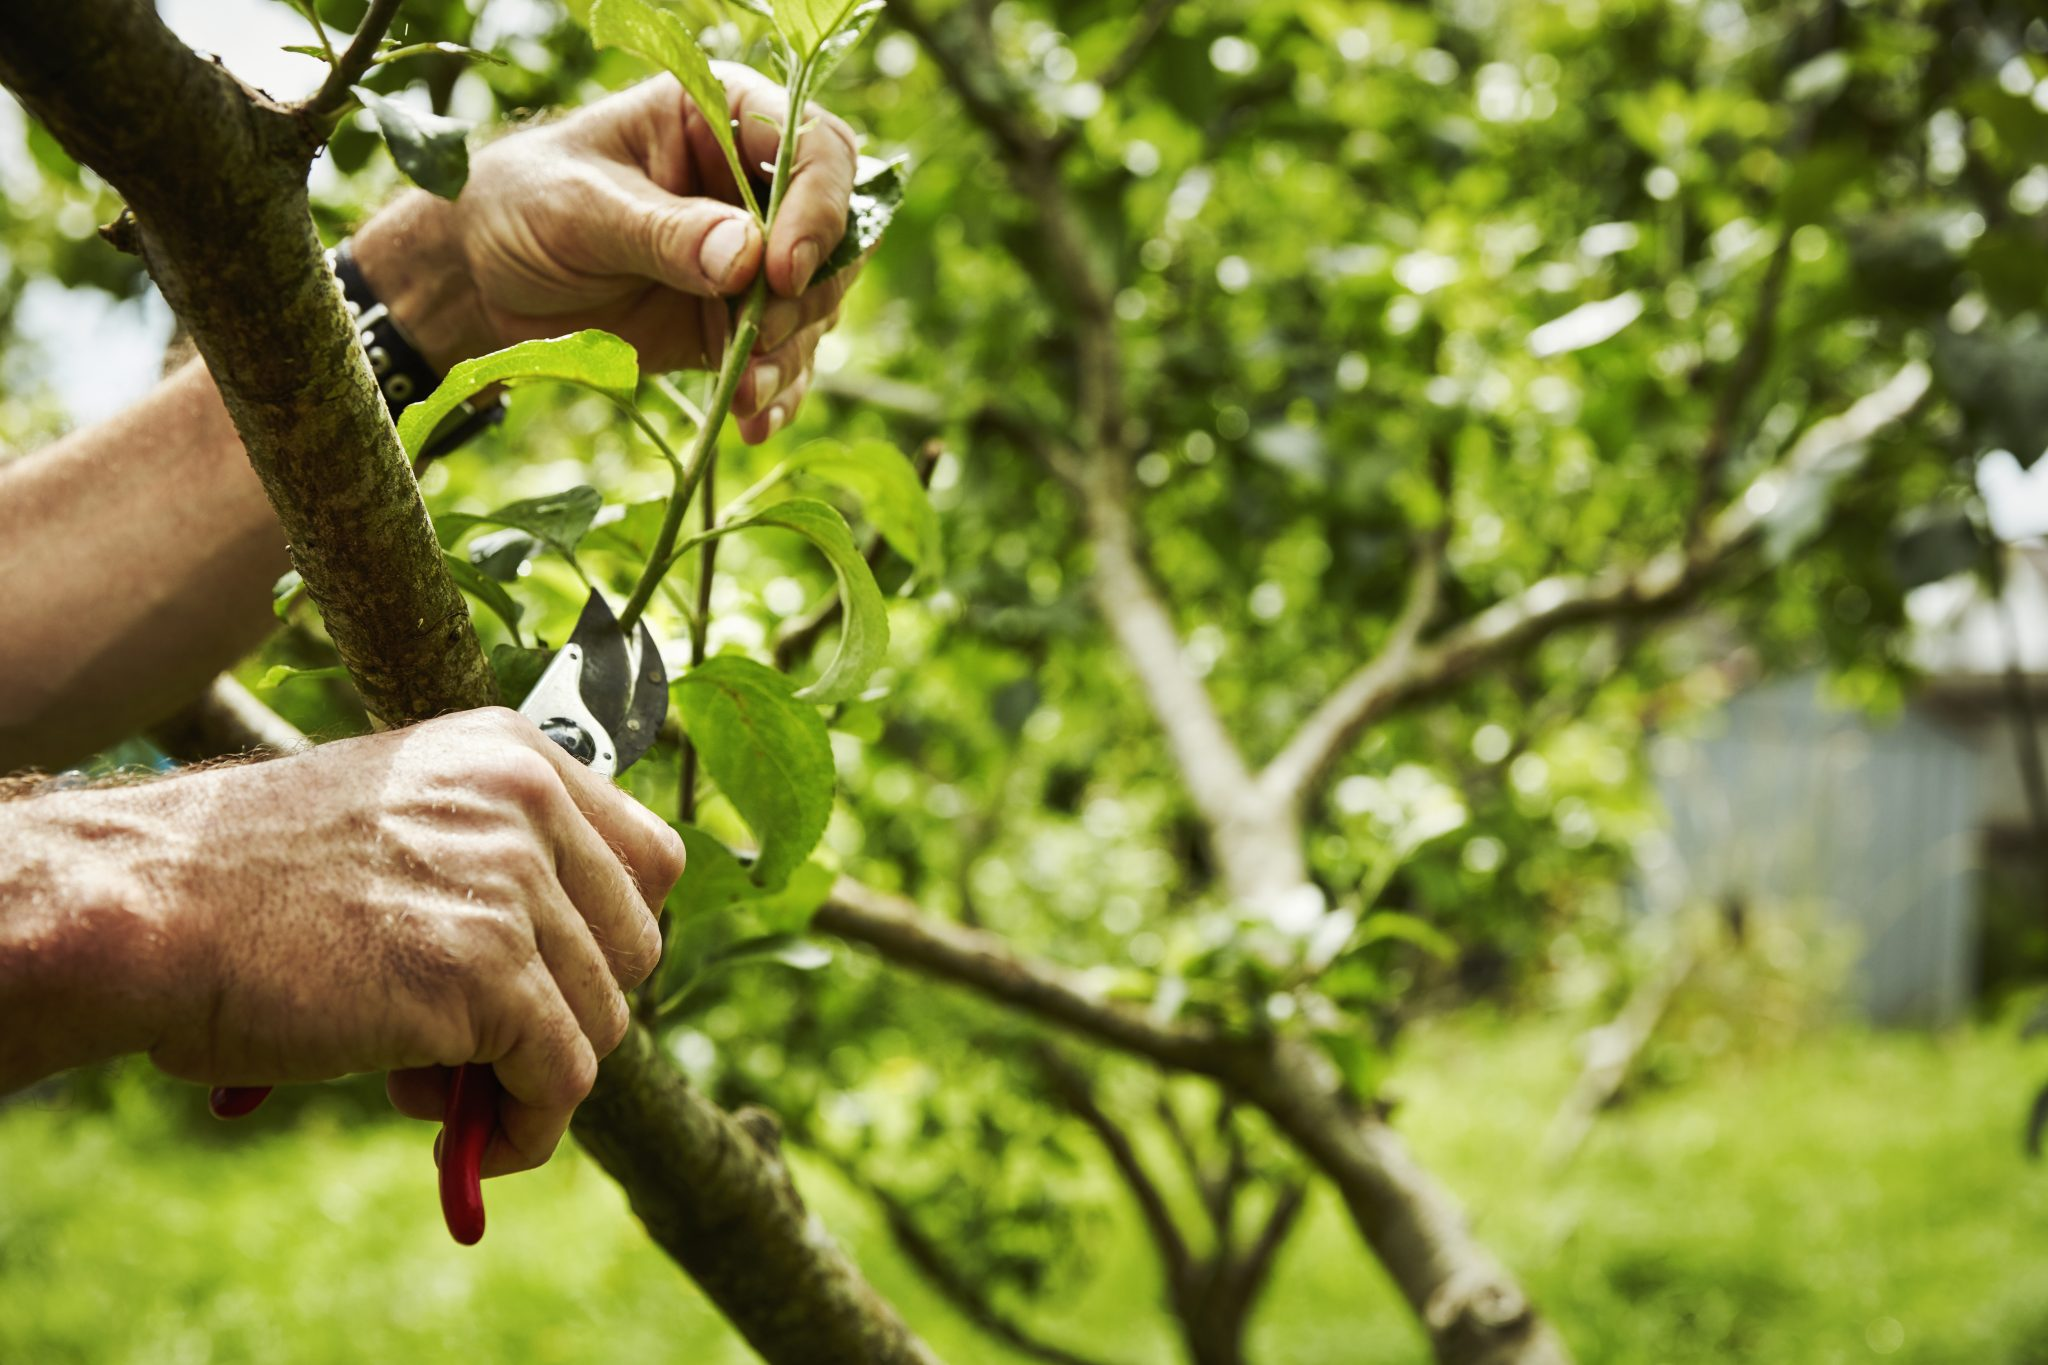 A gardener pruning fruit trees with secateurs. ,Home Gardening,United Kingdom